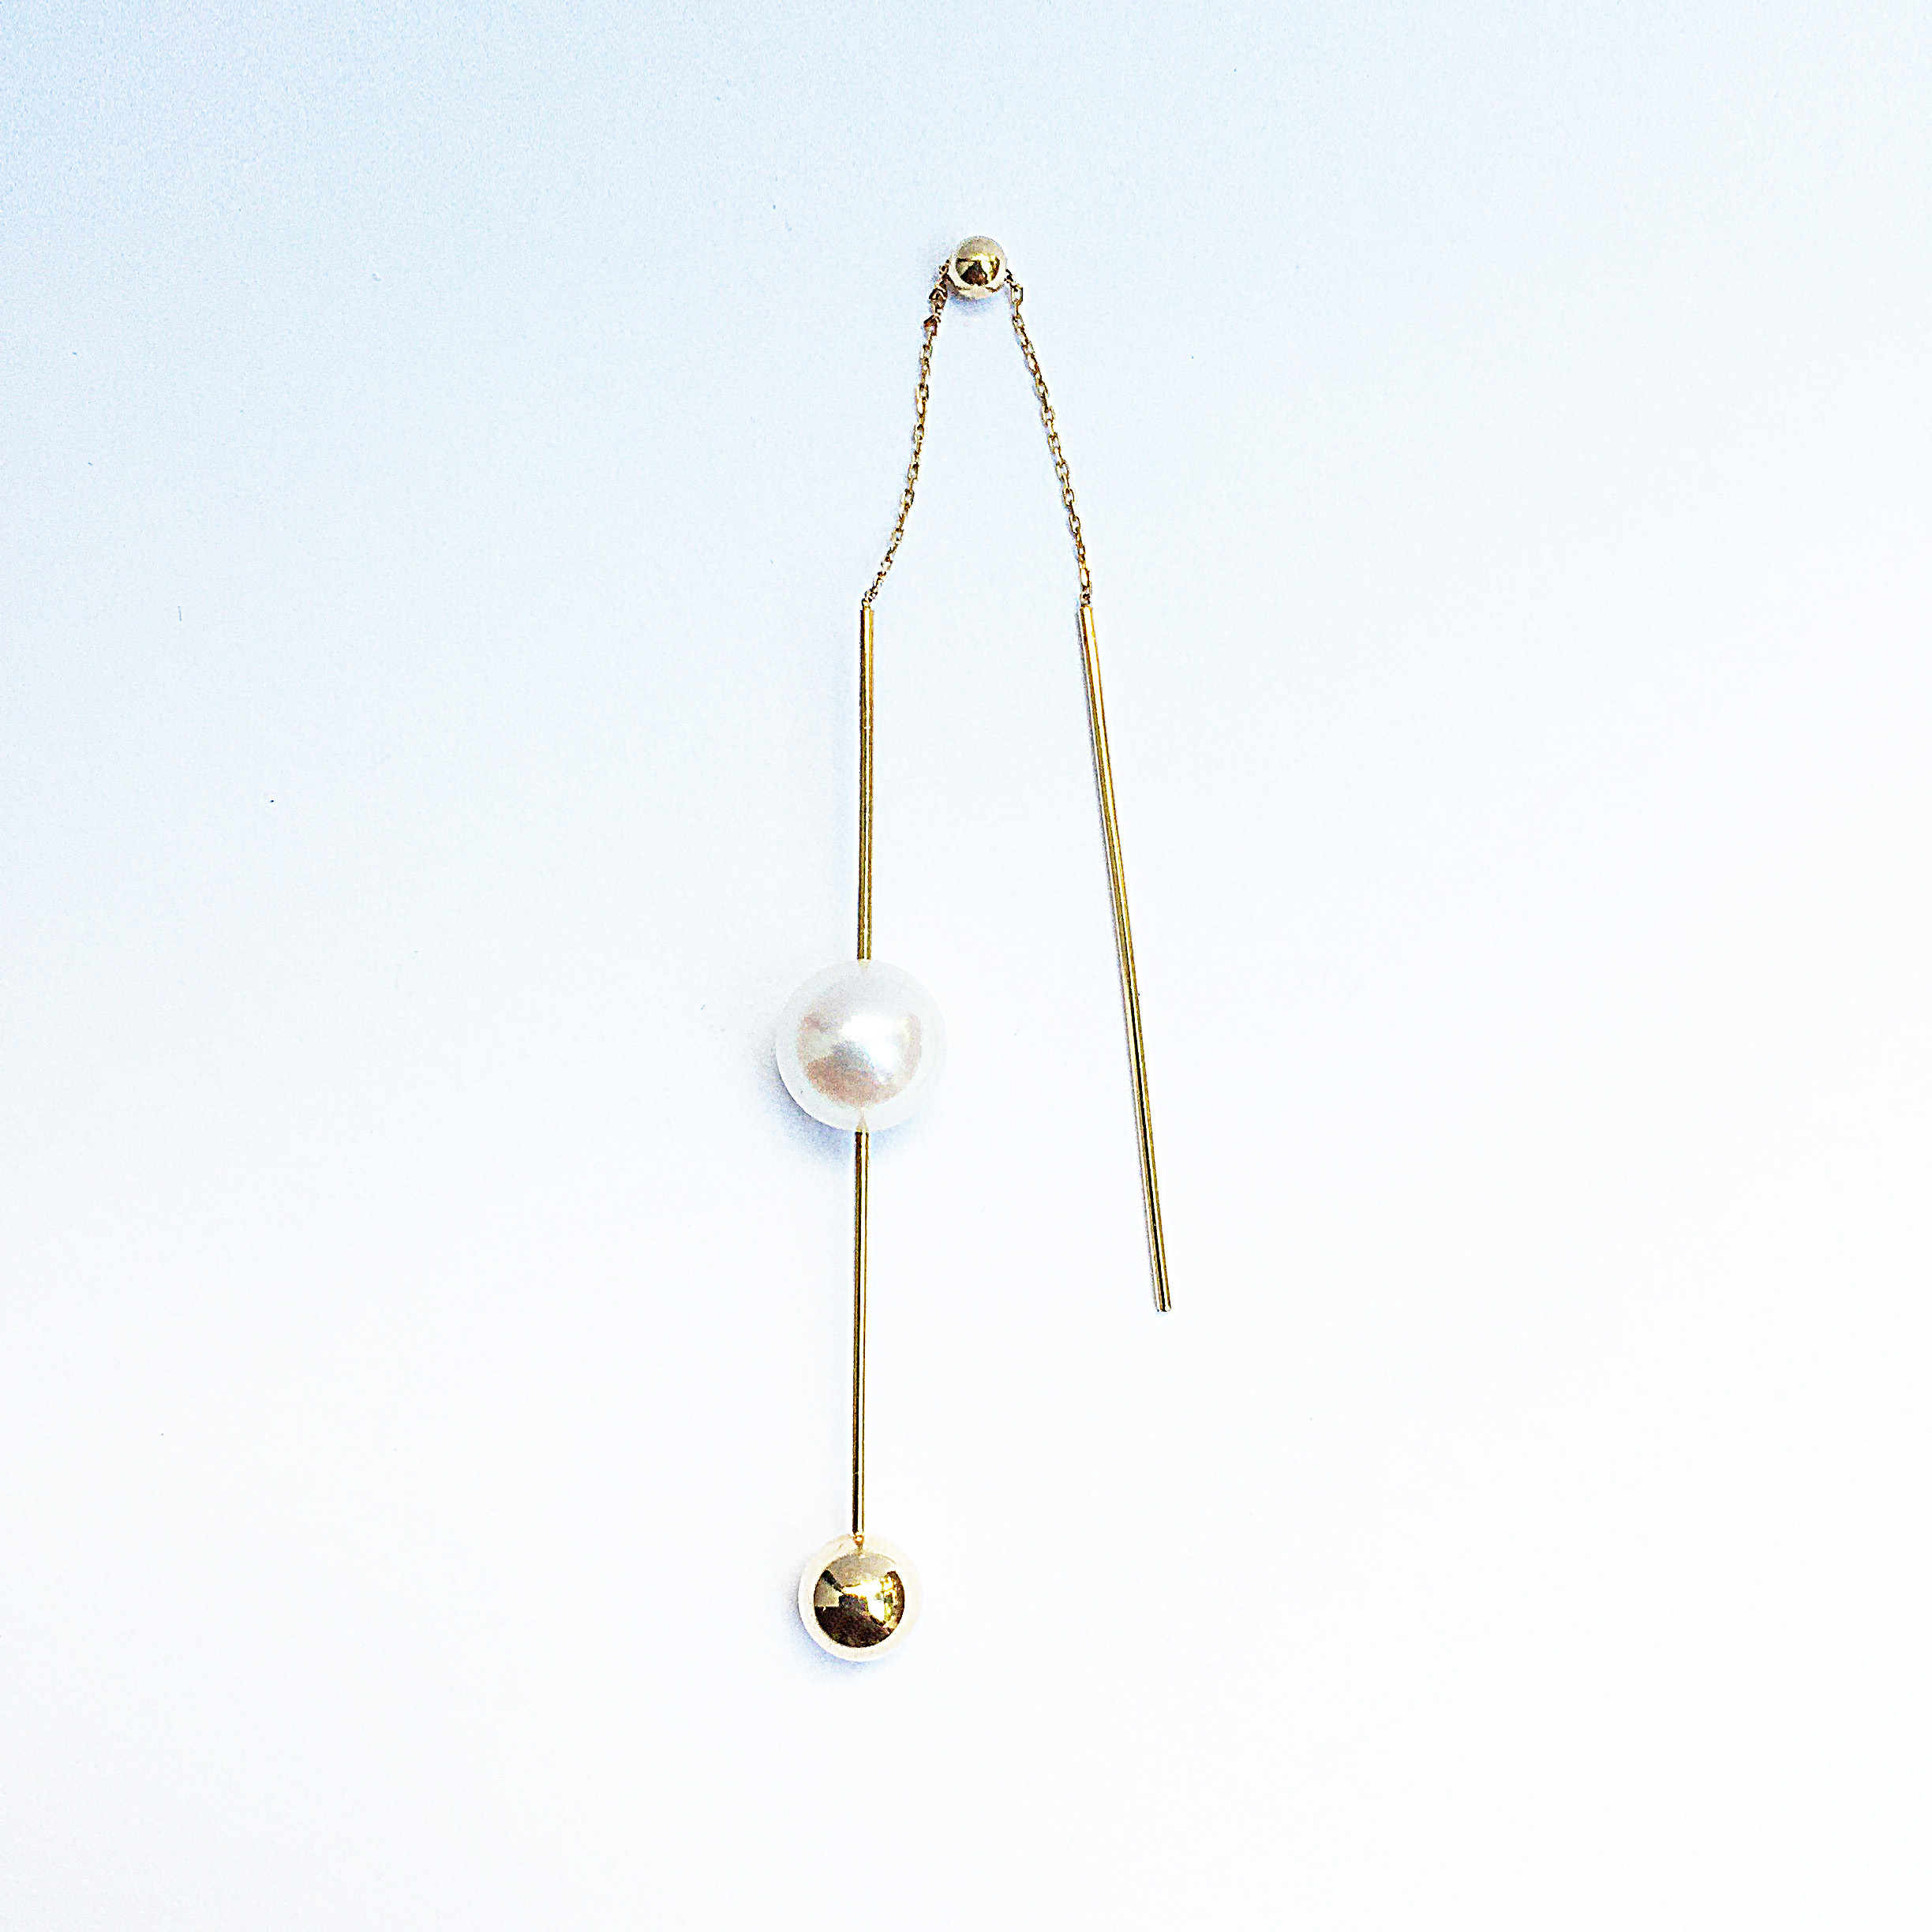 K18 Swing Bar with an Akoya Pearl and a ball Pierce